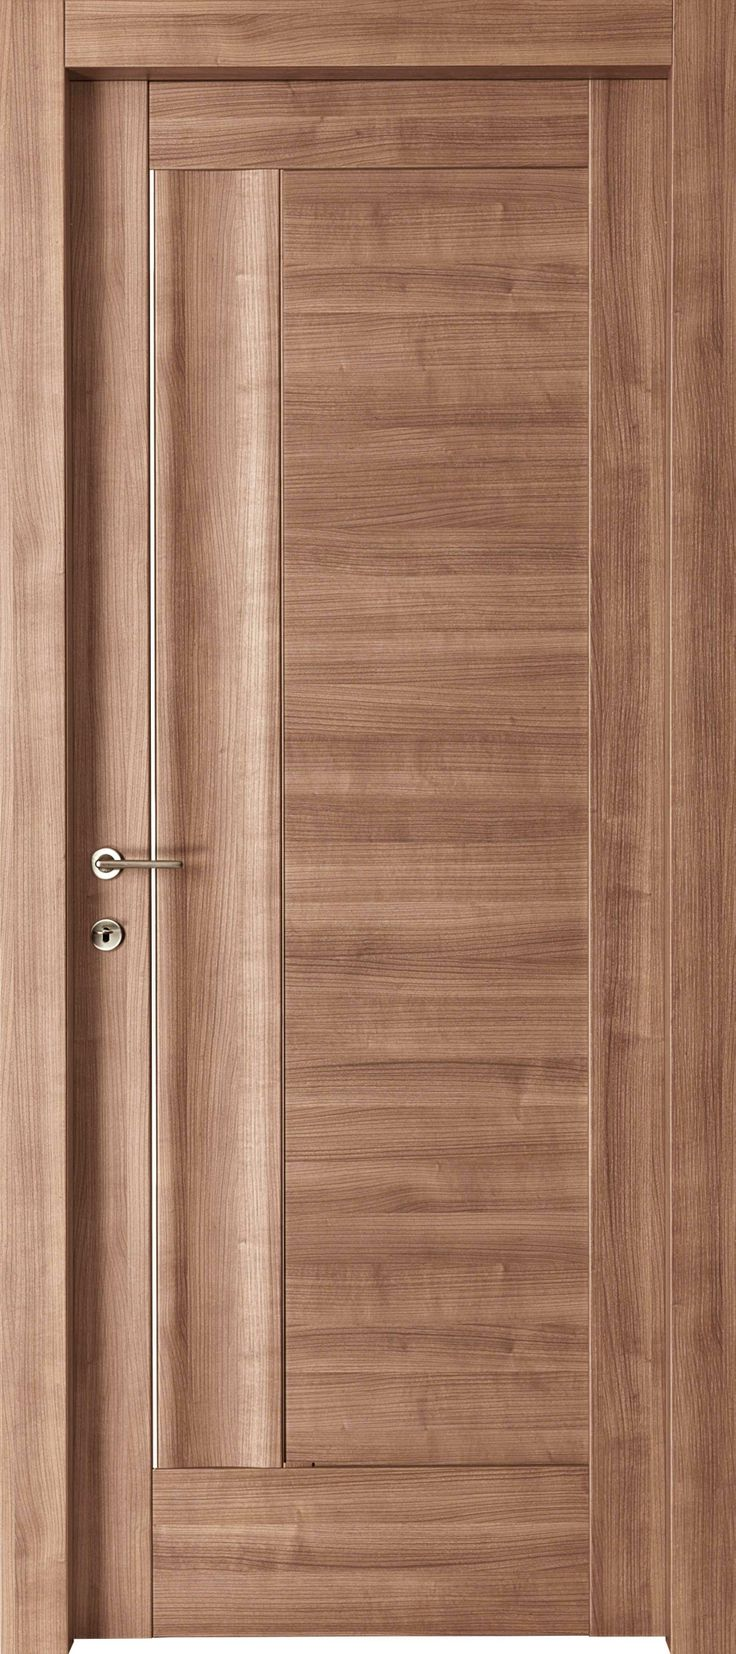 Doors furniture 6 panel solid wood door for Modern main door design